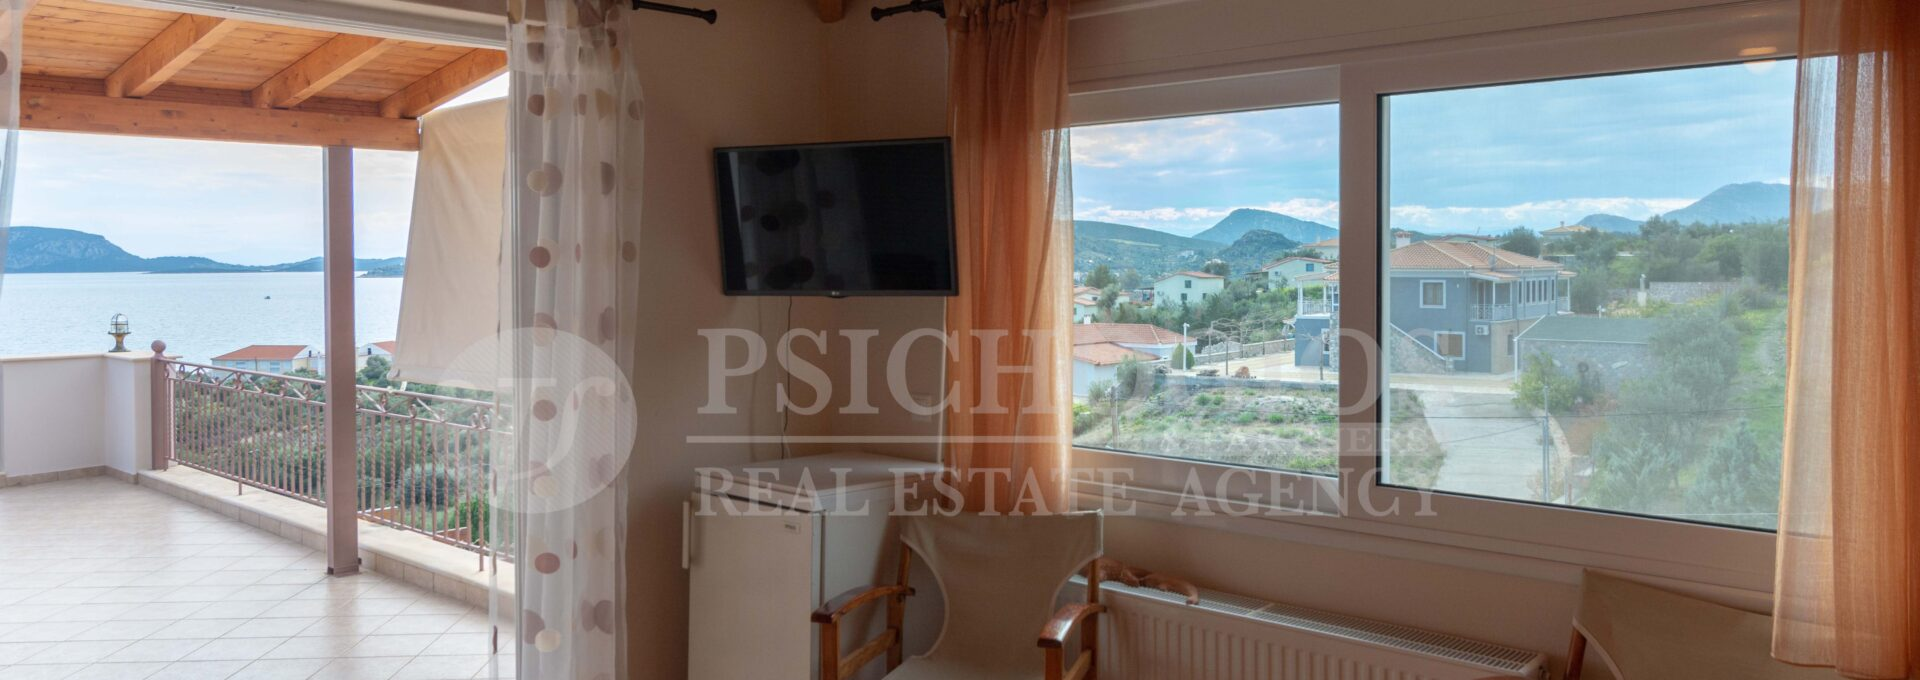 for_sale_house_107_square_meters_3_bedrooms_sea_view_ermioni_greece 1 1 (28)